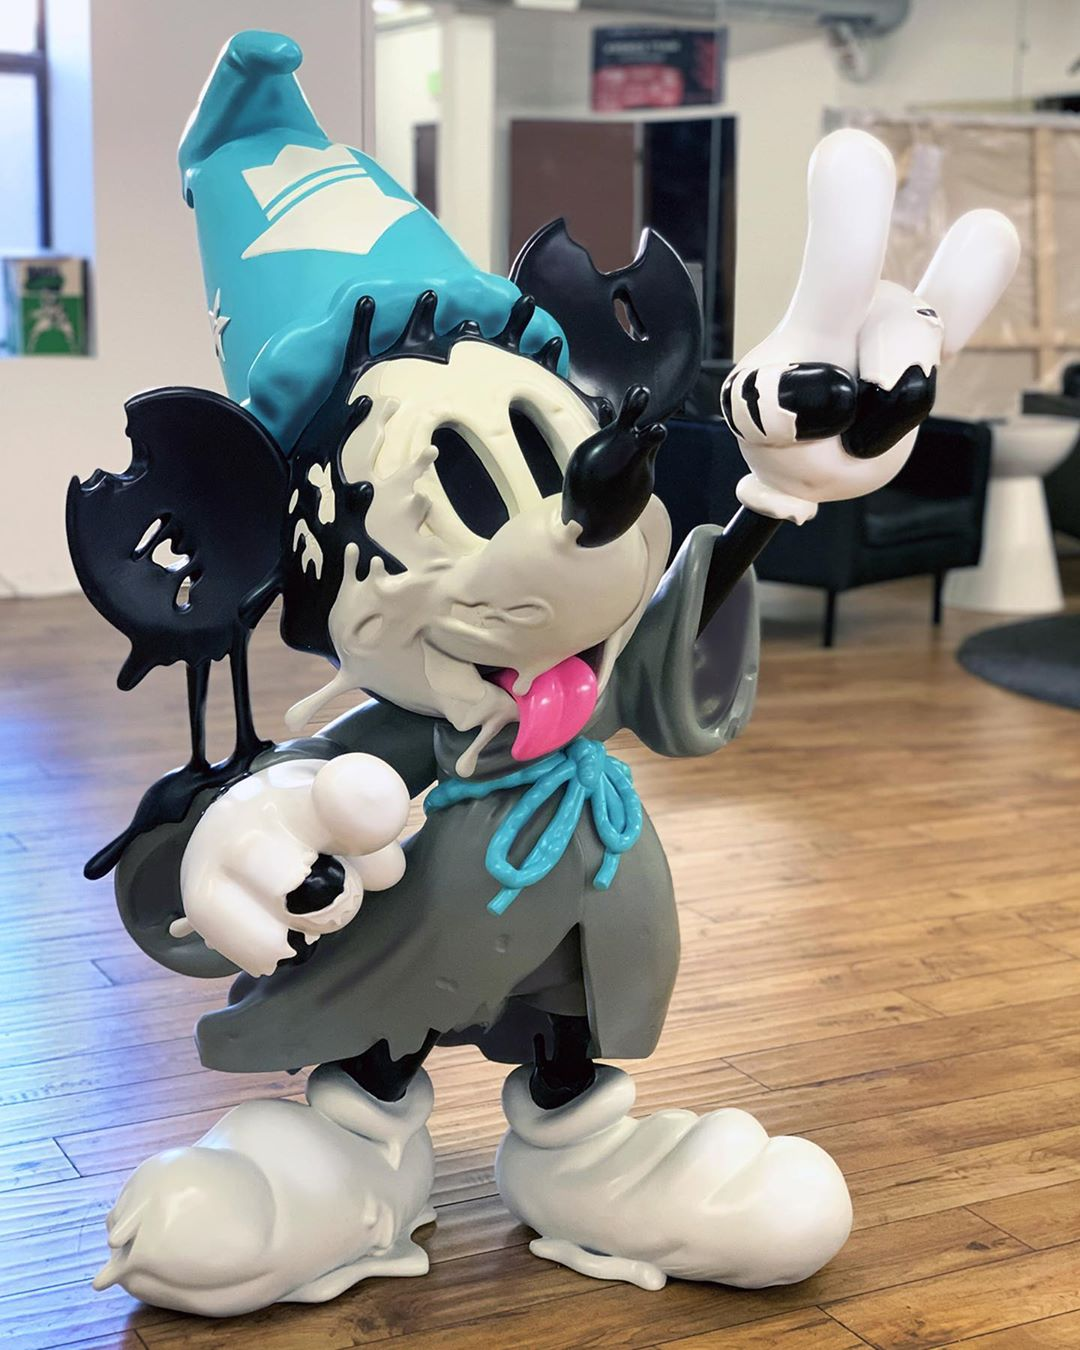 Growing Pains 4-foot sculpture by matt Gondek of the famous wizard mouse.